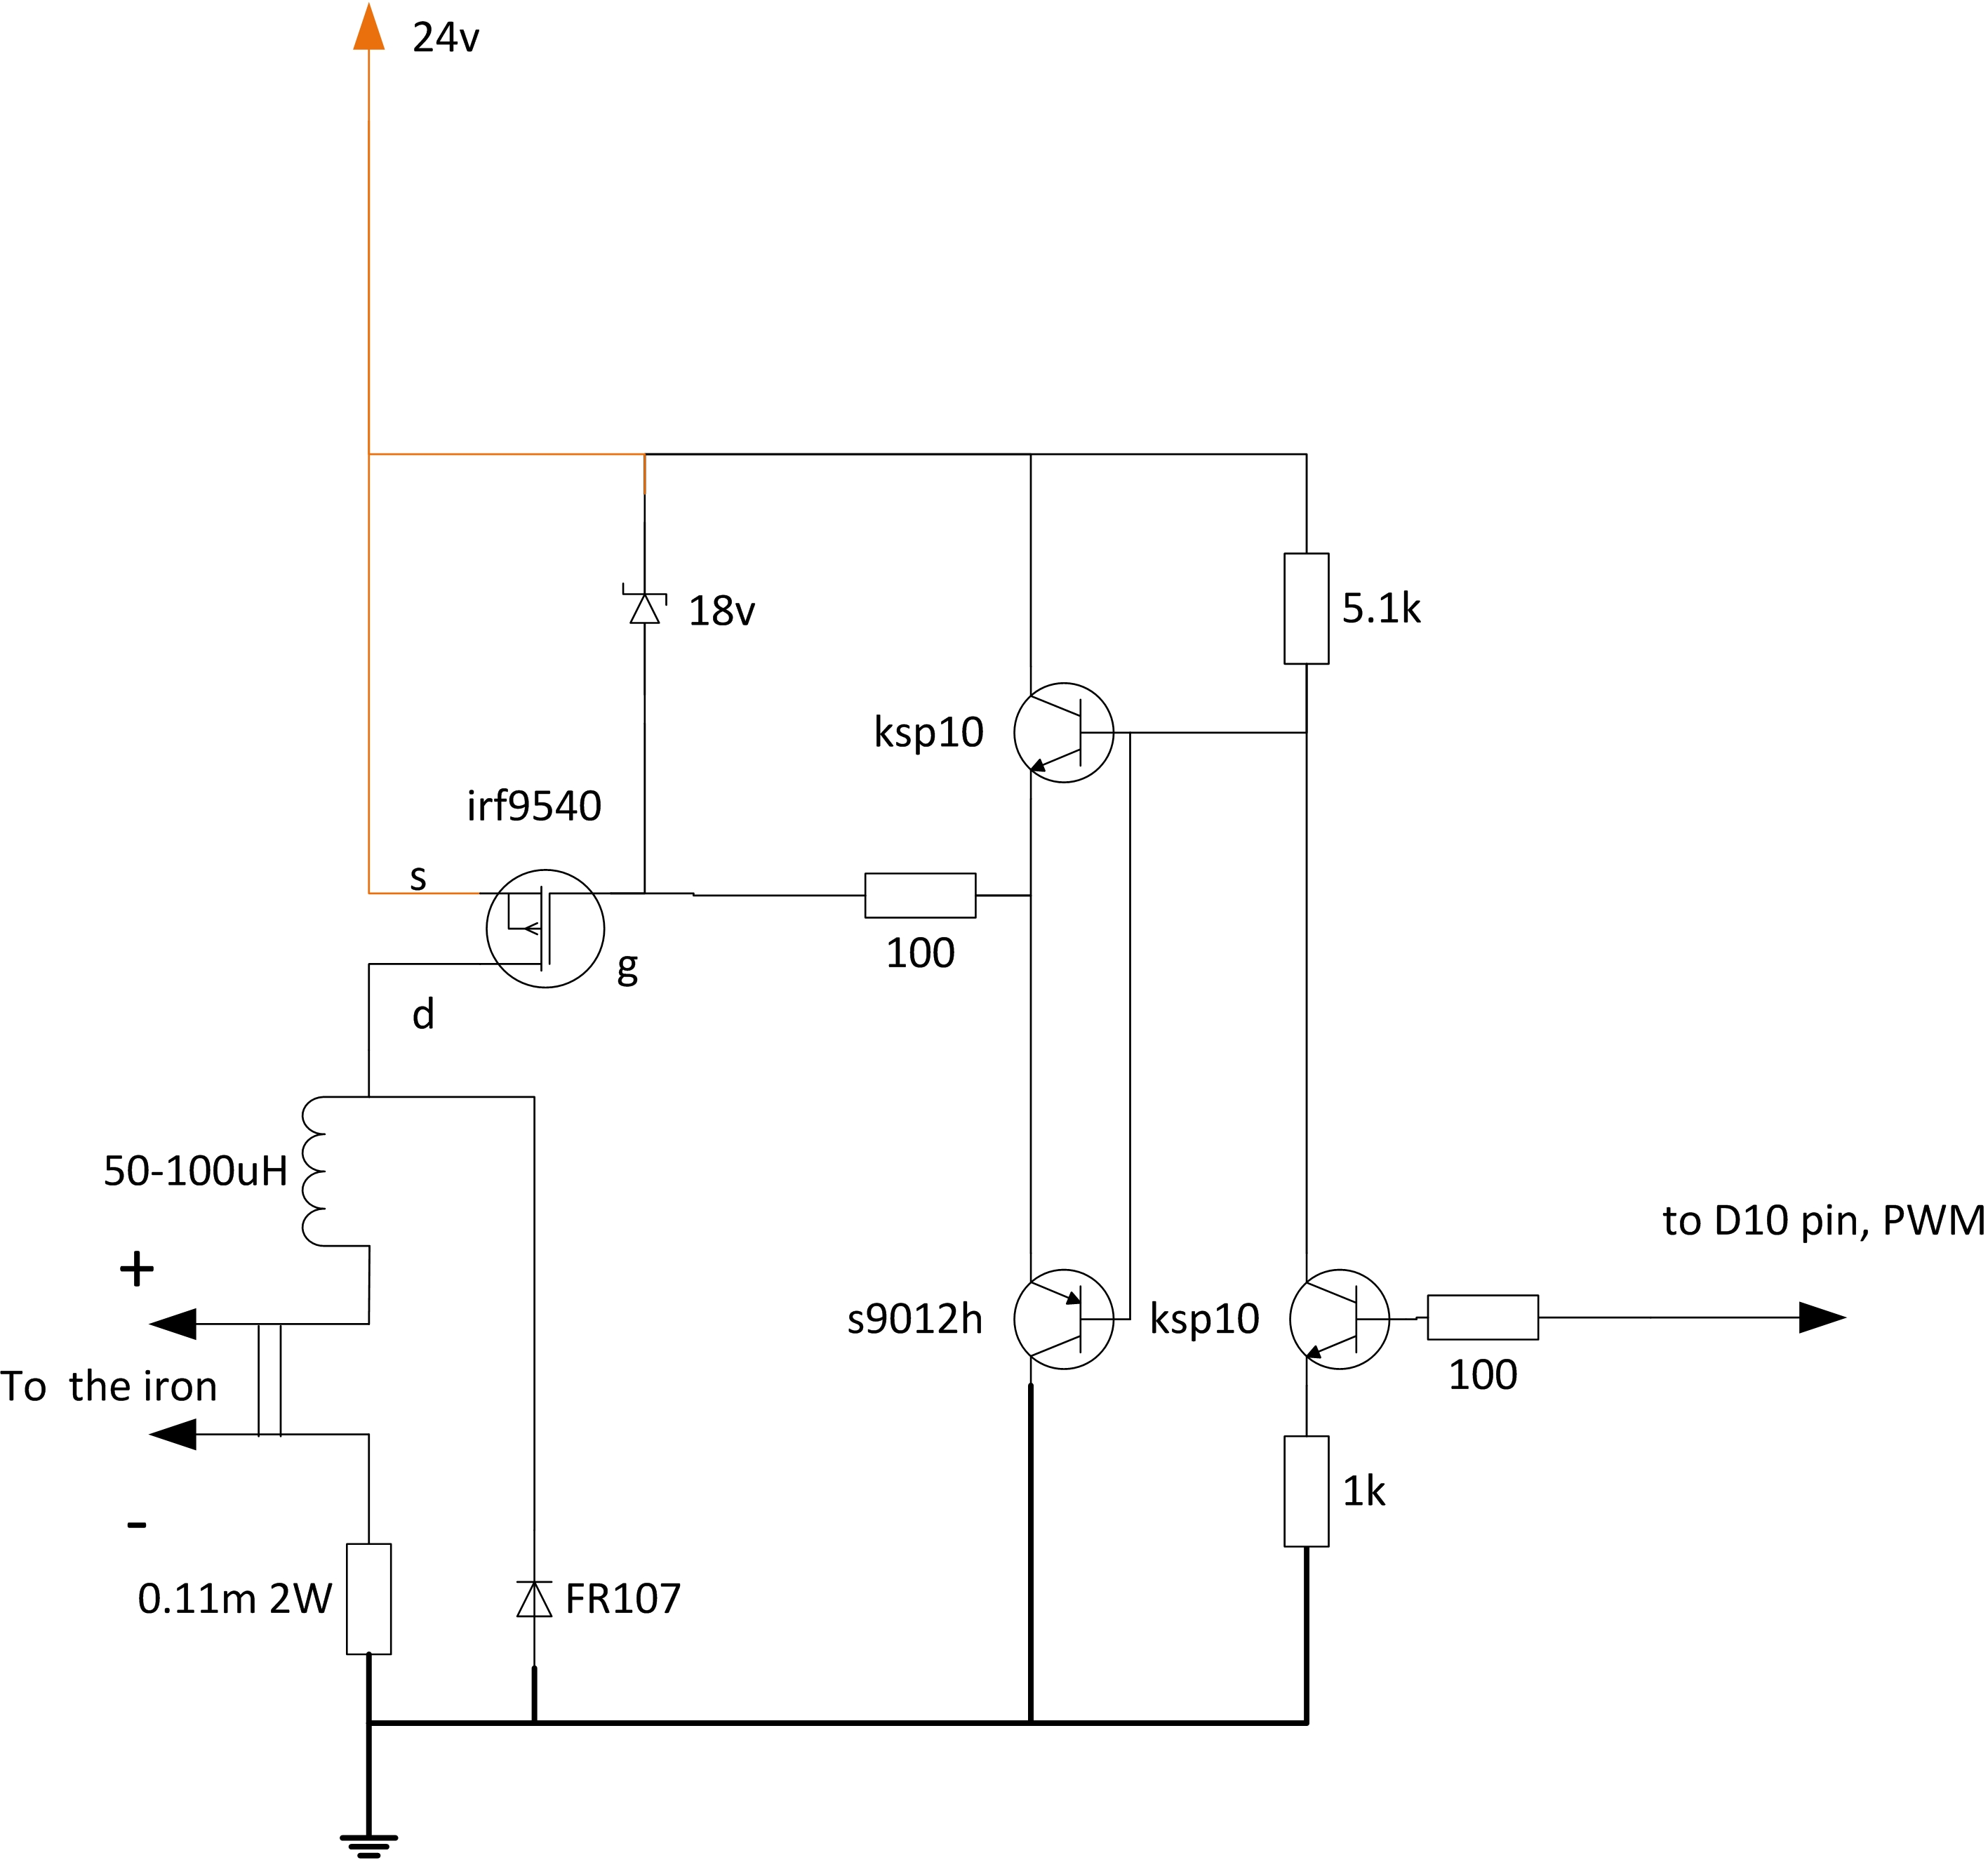 medium resolution of soldering iron controller for hakko t12 tips on arduino hackster io diagram also soldering iron as well electric iron circuit diagram